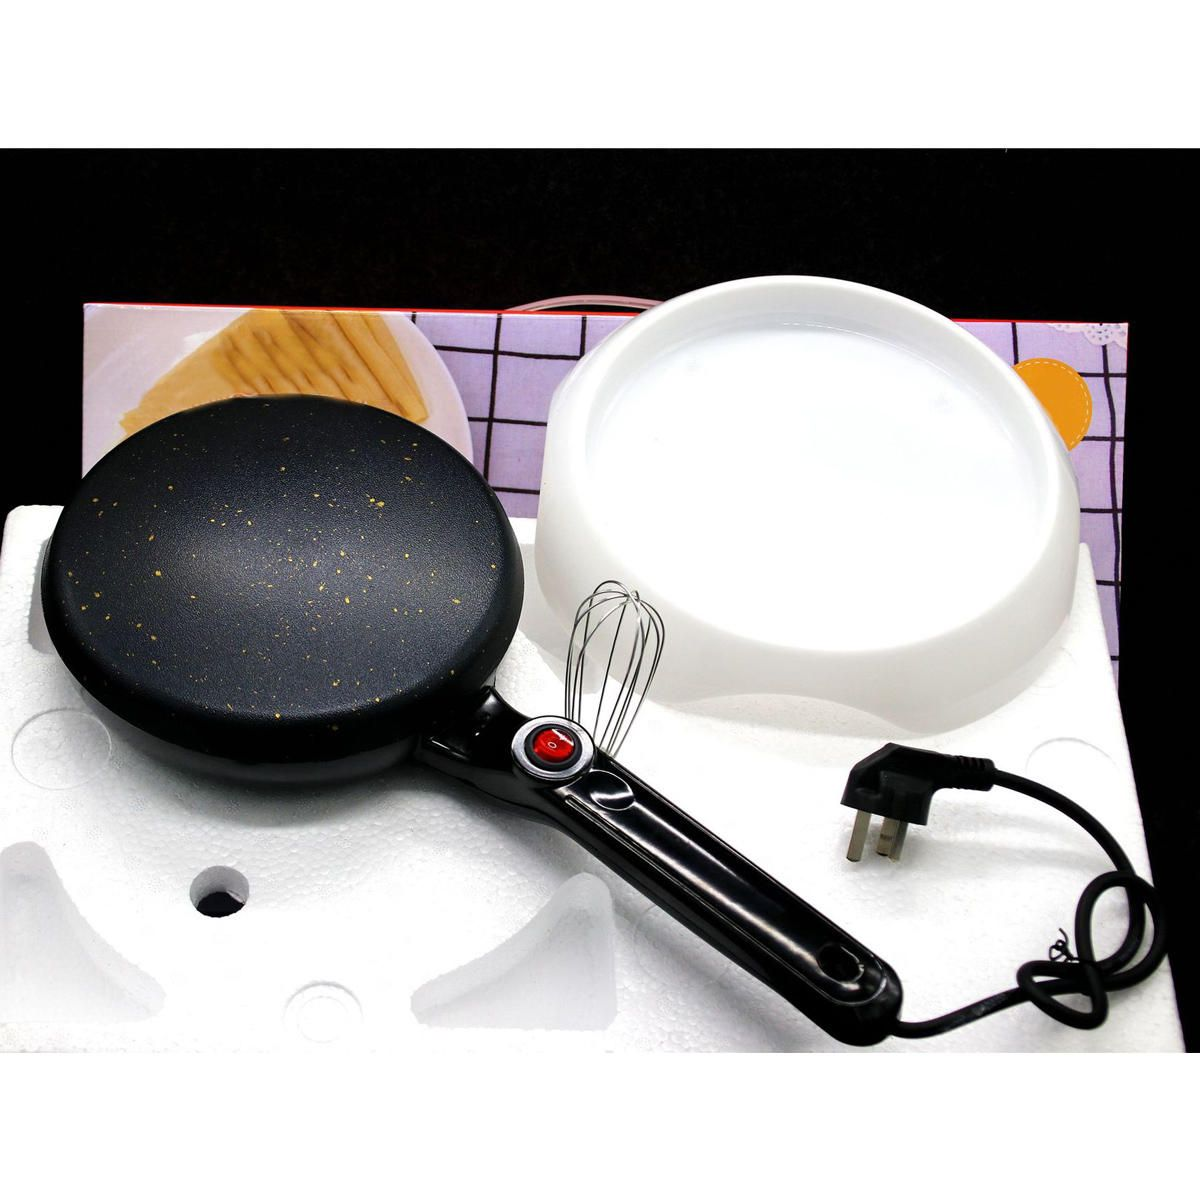 UCG US$23.88 600W Kitchen Electric Griddle Pancake Baking Crepe Maker Cake Pan Pizza Machine